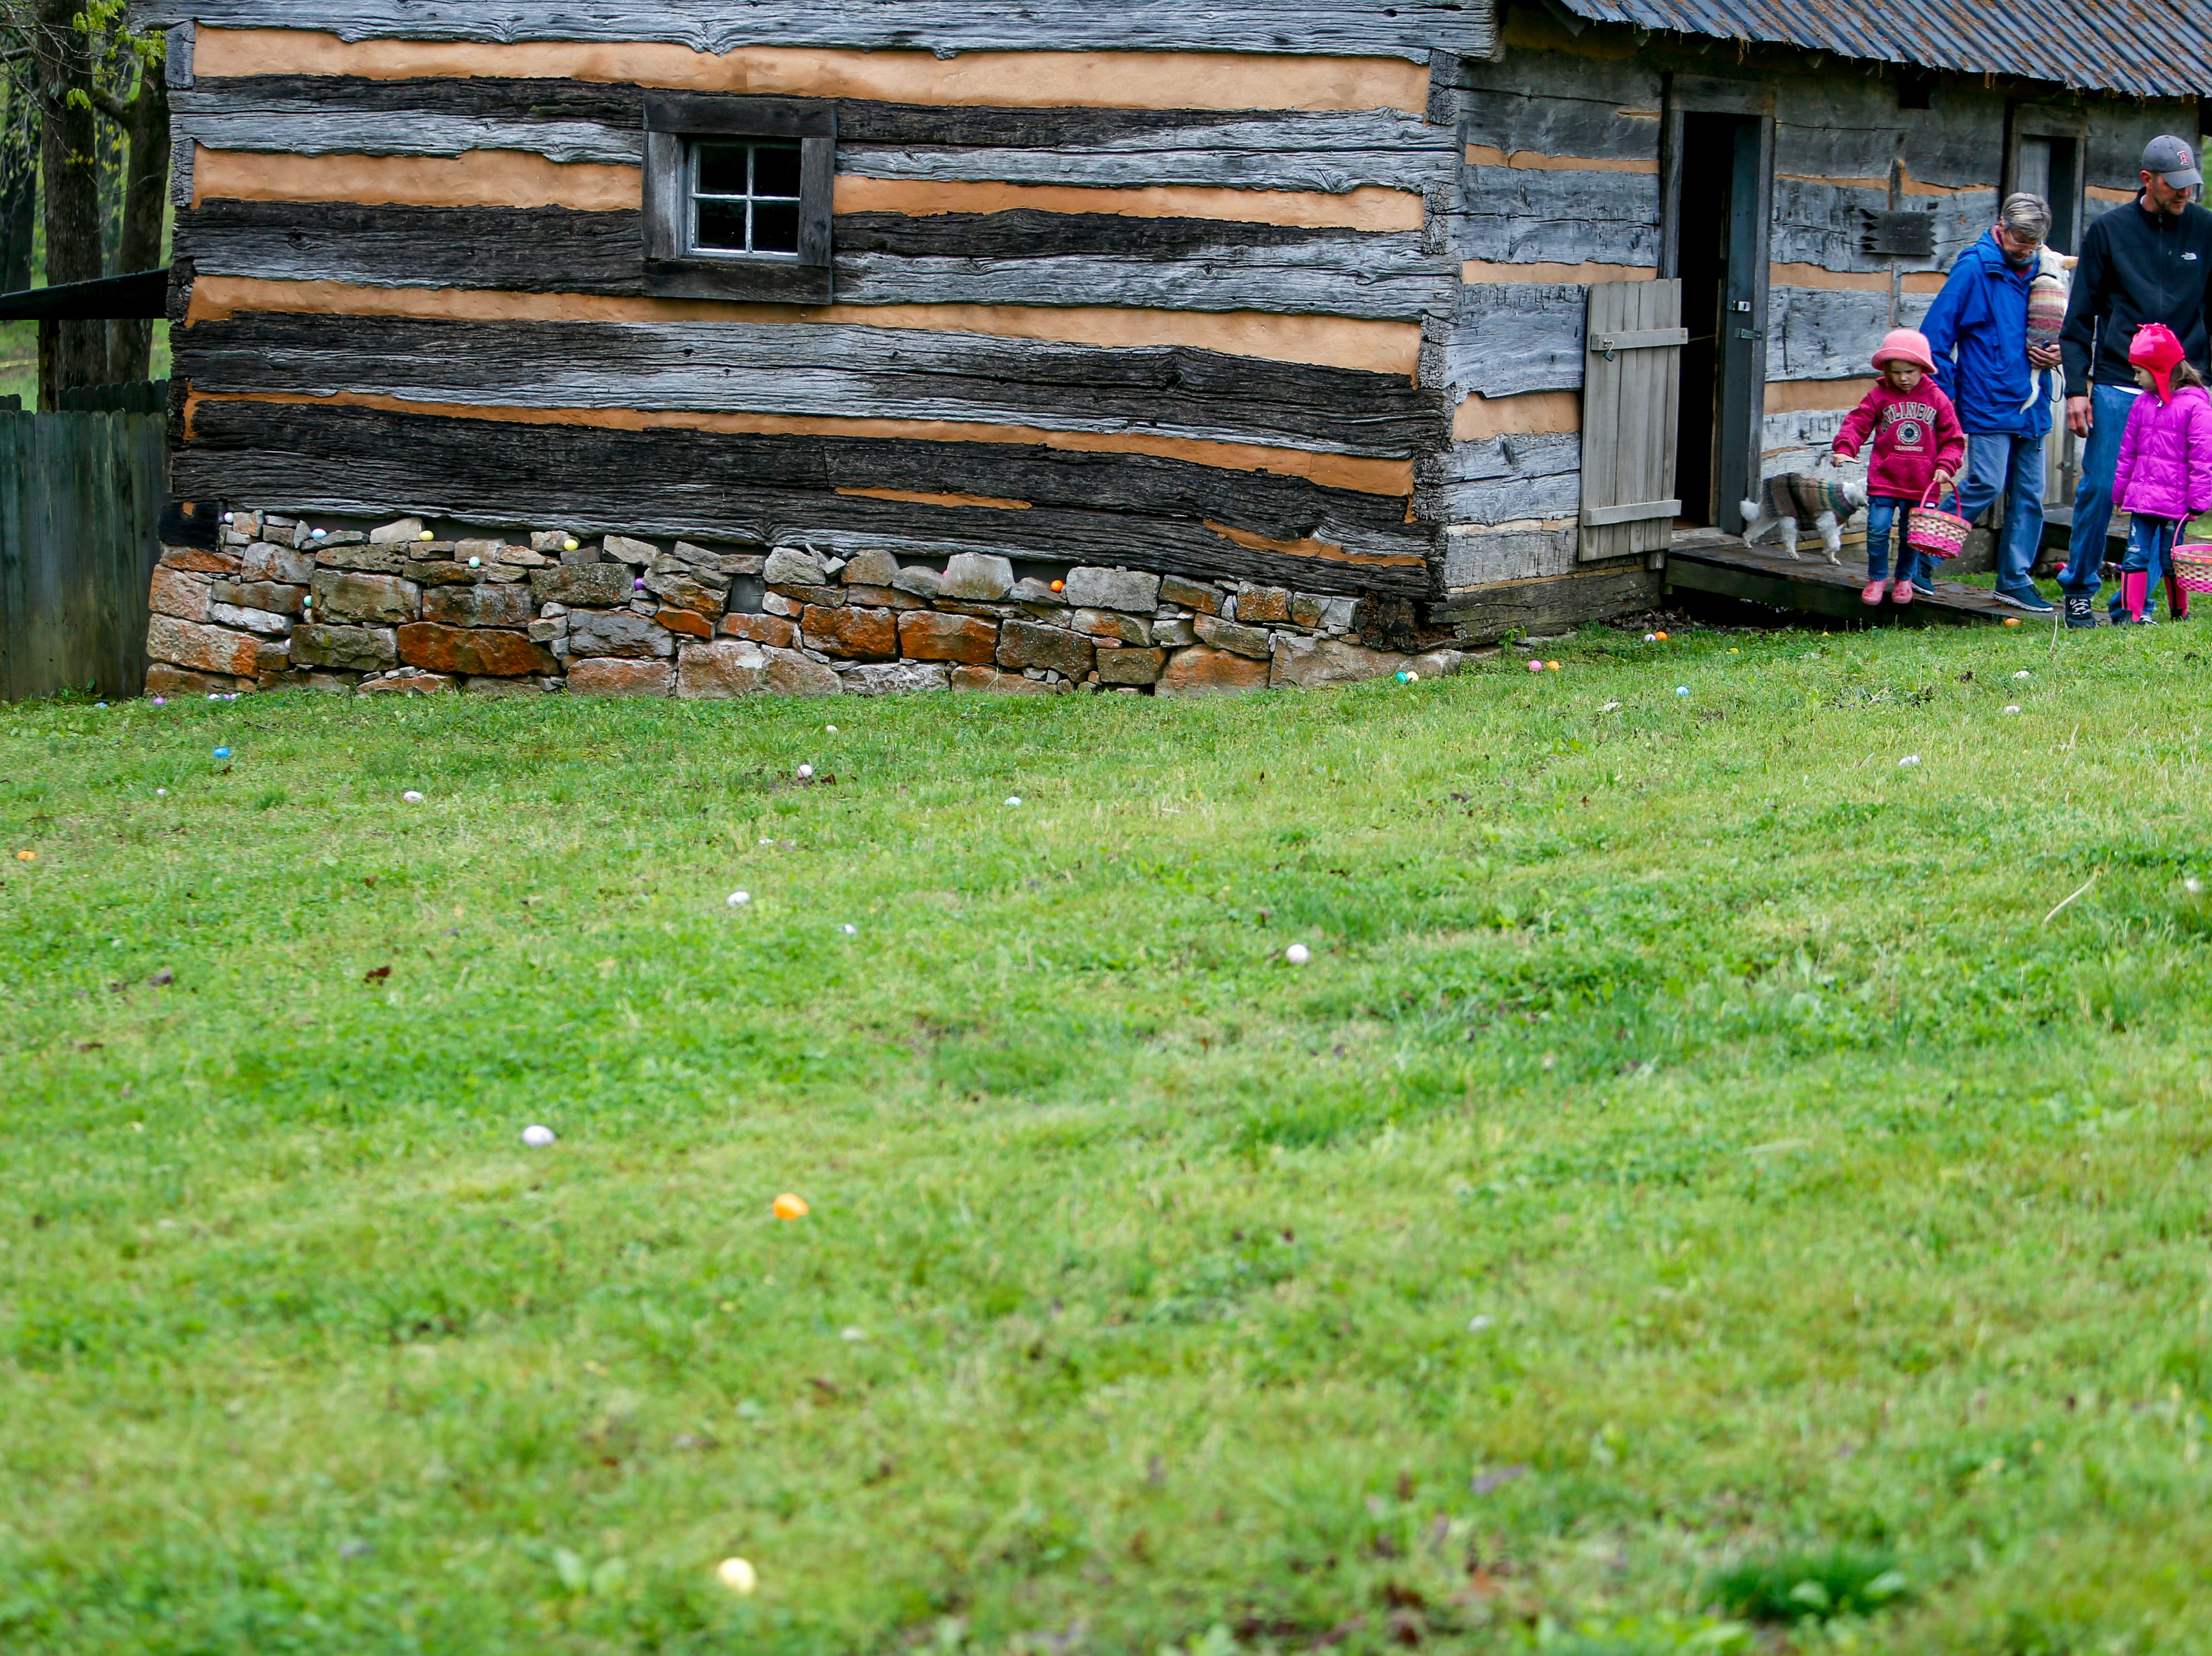 A family exits the nature center to see a field full of eggs at the annual Easter egg hunts at Historic Collinsville in Clarksville, Tenn., on Saturday, April 20, 2019.